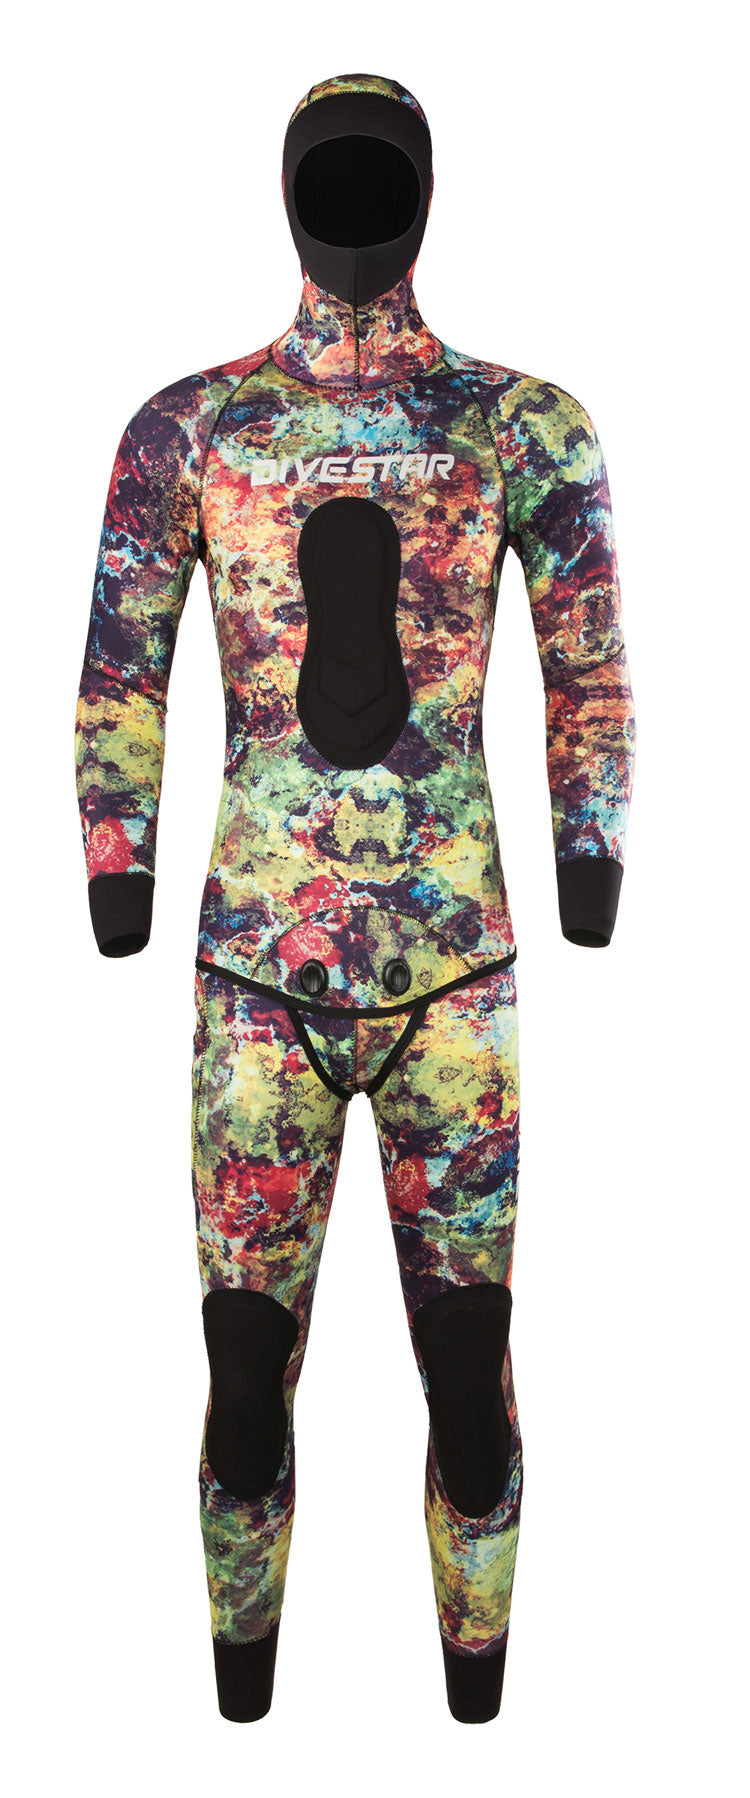 spearfishing wet suit Speardiver  Wetsuit